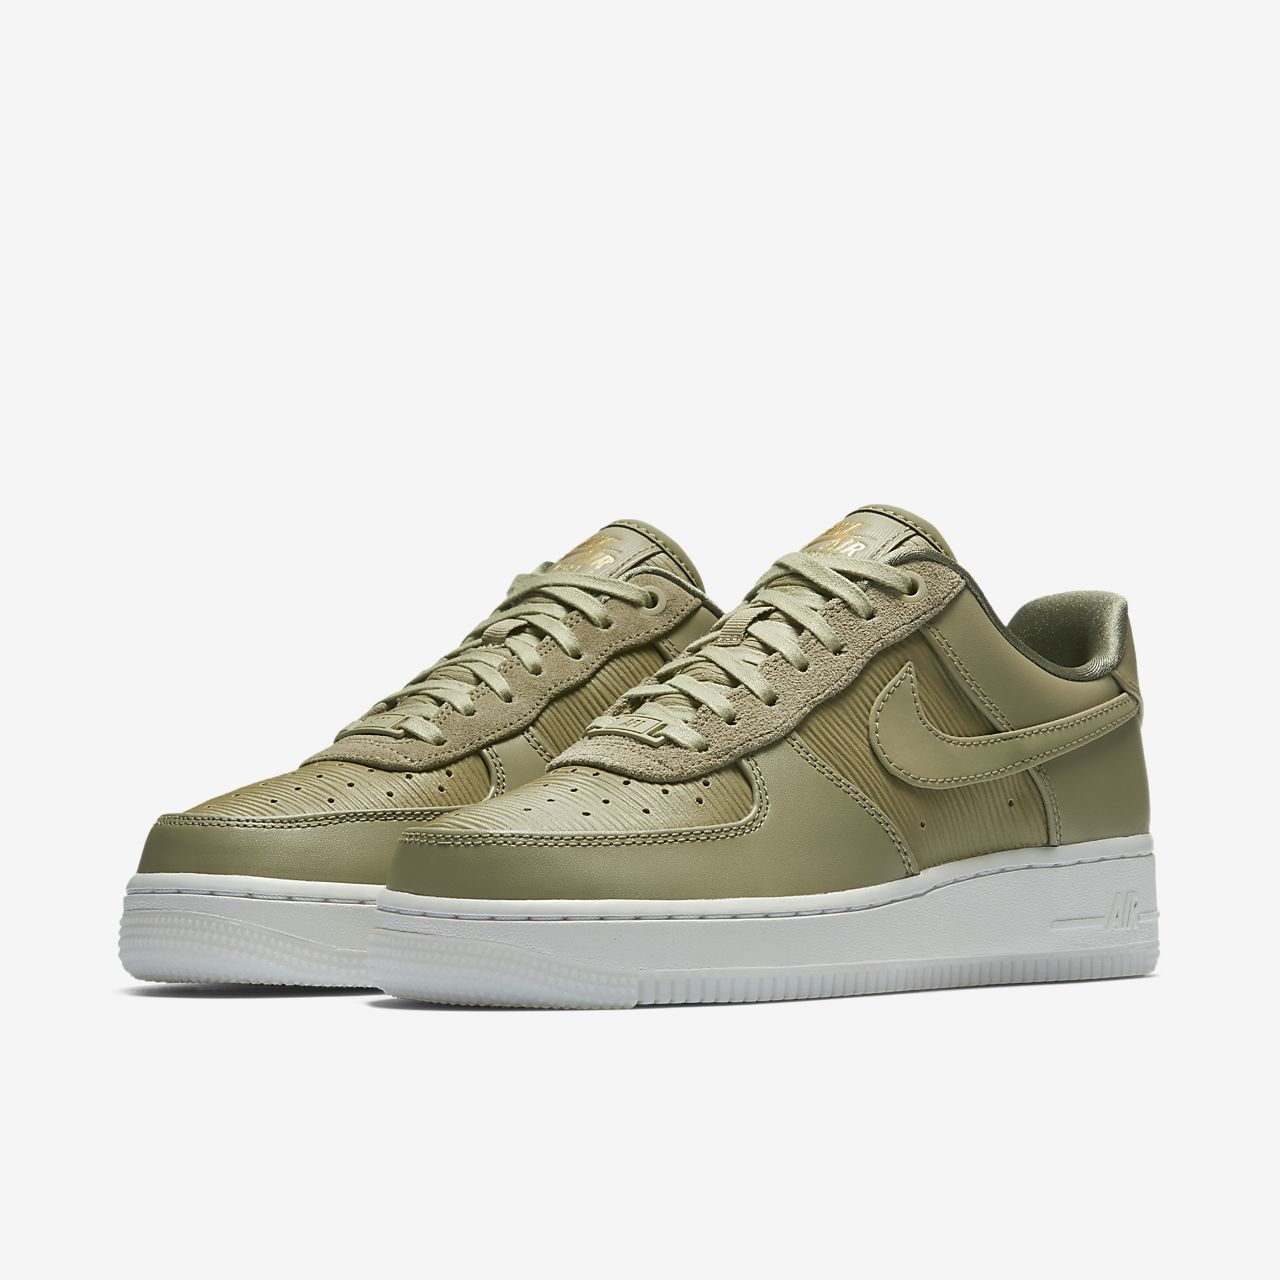 buty nike air force 1 low 07 lv8 damskie